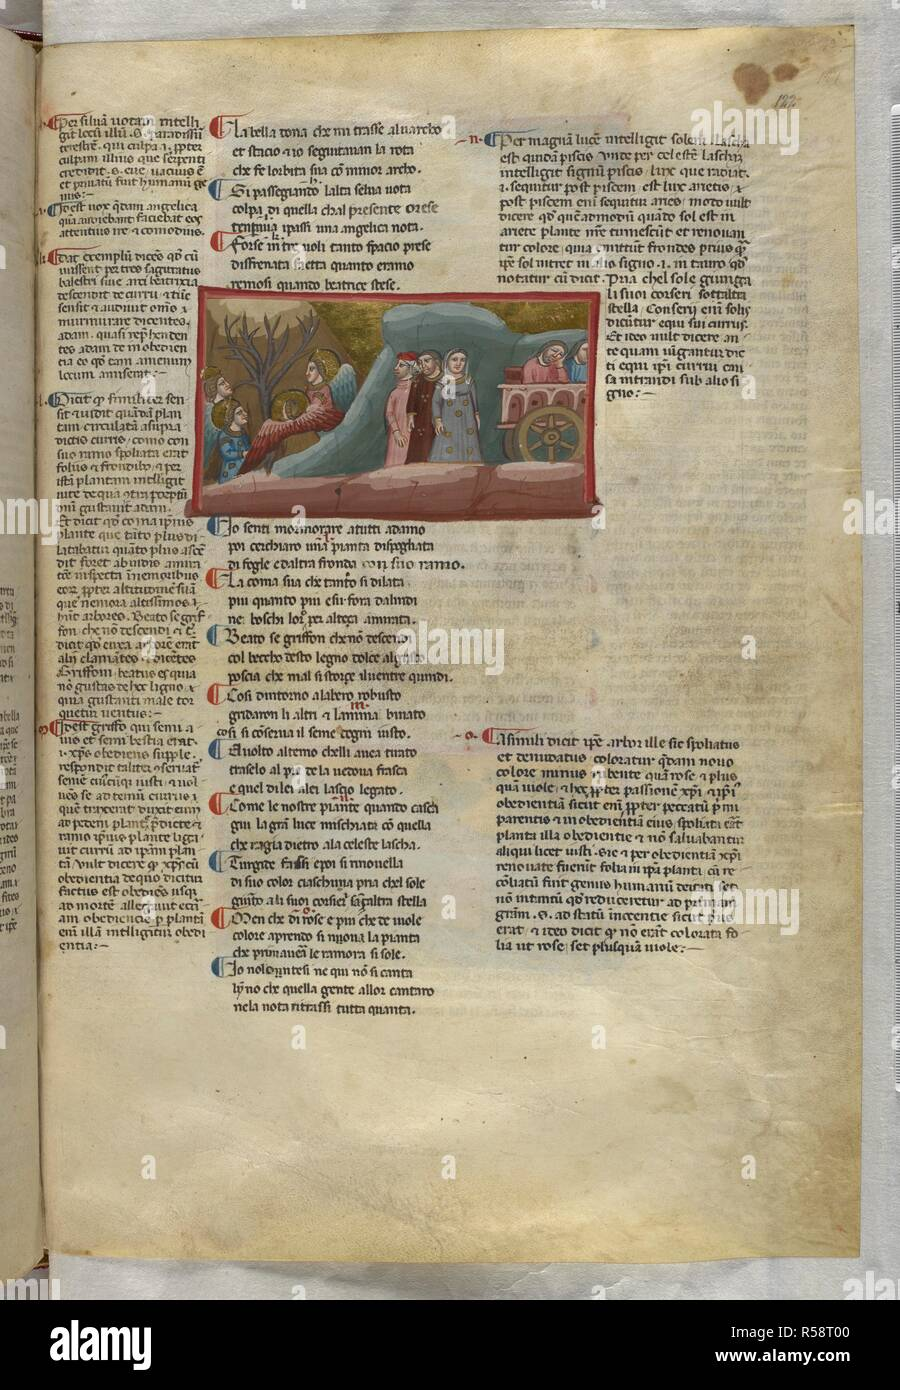 Purgatorio: Angels dance around the Tree of Knowledge. Dante Alighieri, Divina Commedia ( The Divine Comedy ), with a commentary in Latin. 1st half of the 14th century. Source: Egerton 943, f.122. Language: Italian, Latin. - Stock Image